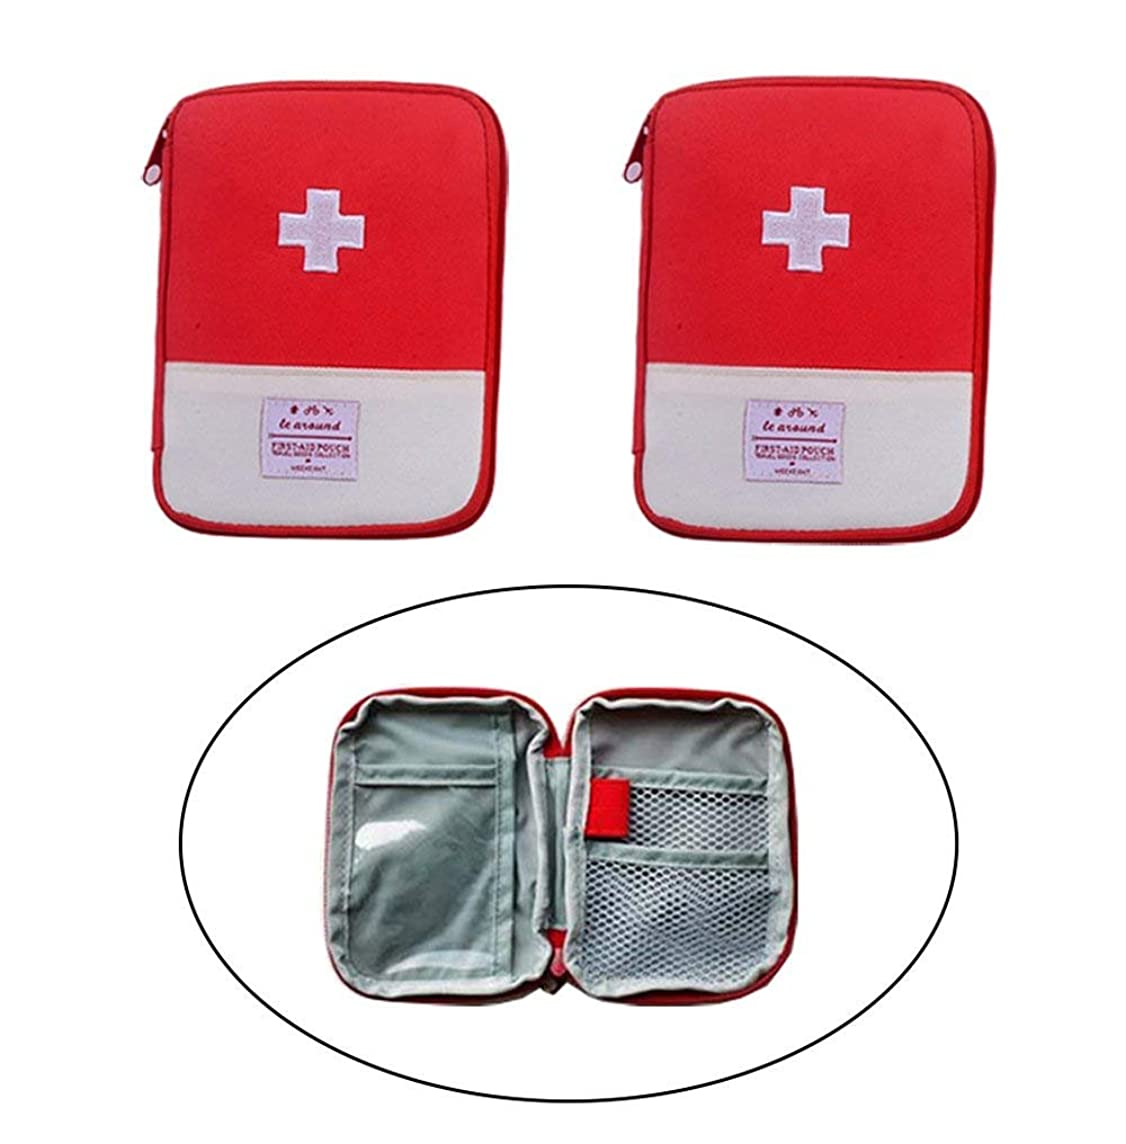 Echodo Travel Mini First Aid Pouch Multifunction Emergency Medicine Storage Bag Pills Drugs Package Container for Outdoor Activities Camping Hiking 2 Packs